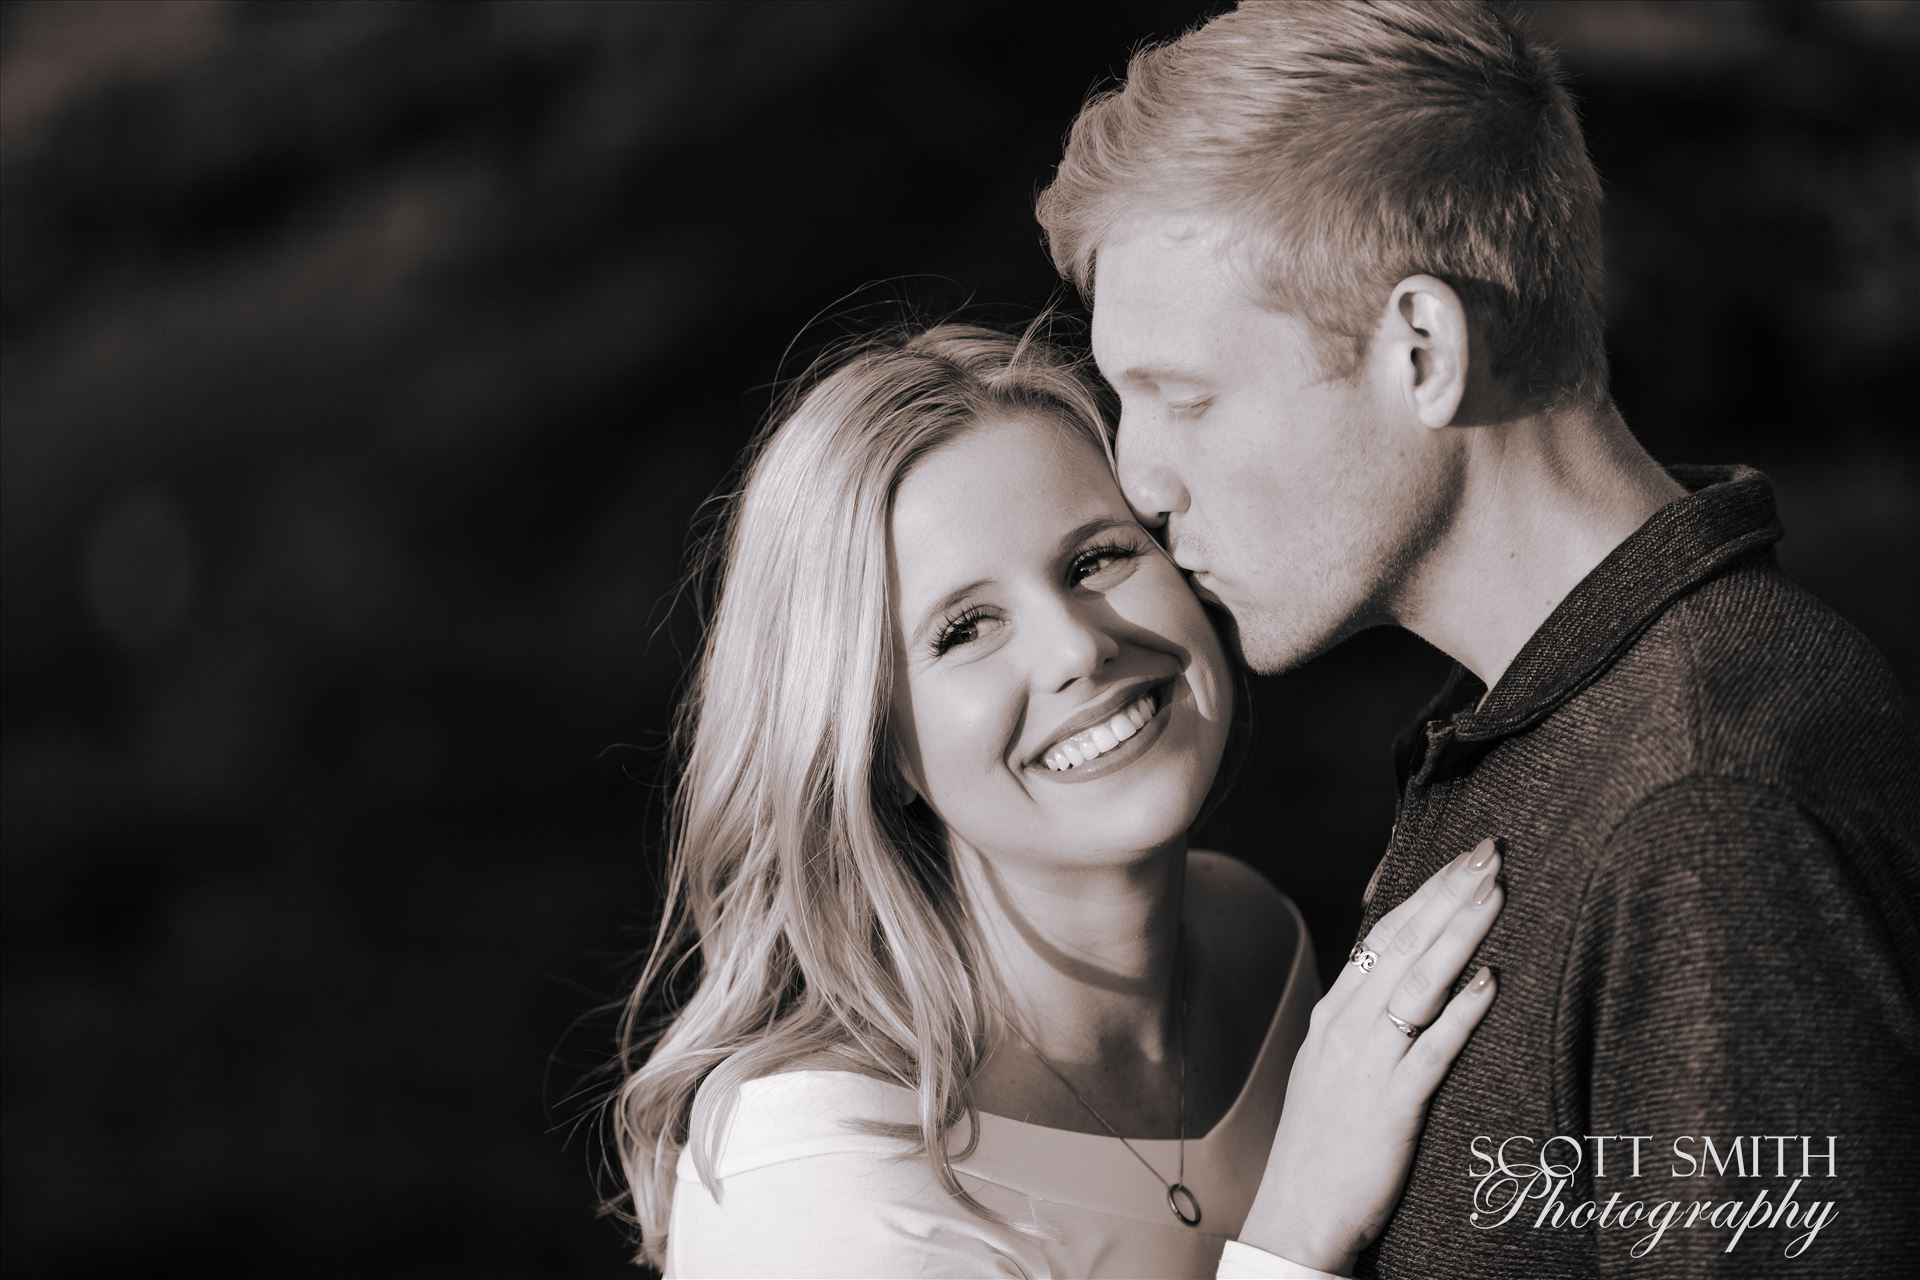 Joanna and Ryan 2 - Joanna and Ryan's engagement session at Spooner's Cover, California. by D Scott Smith